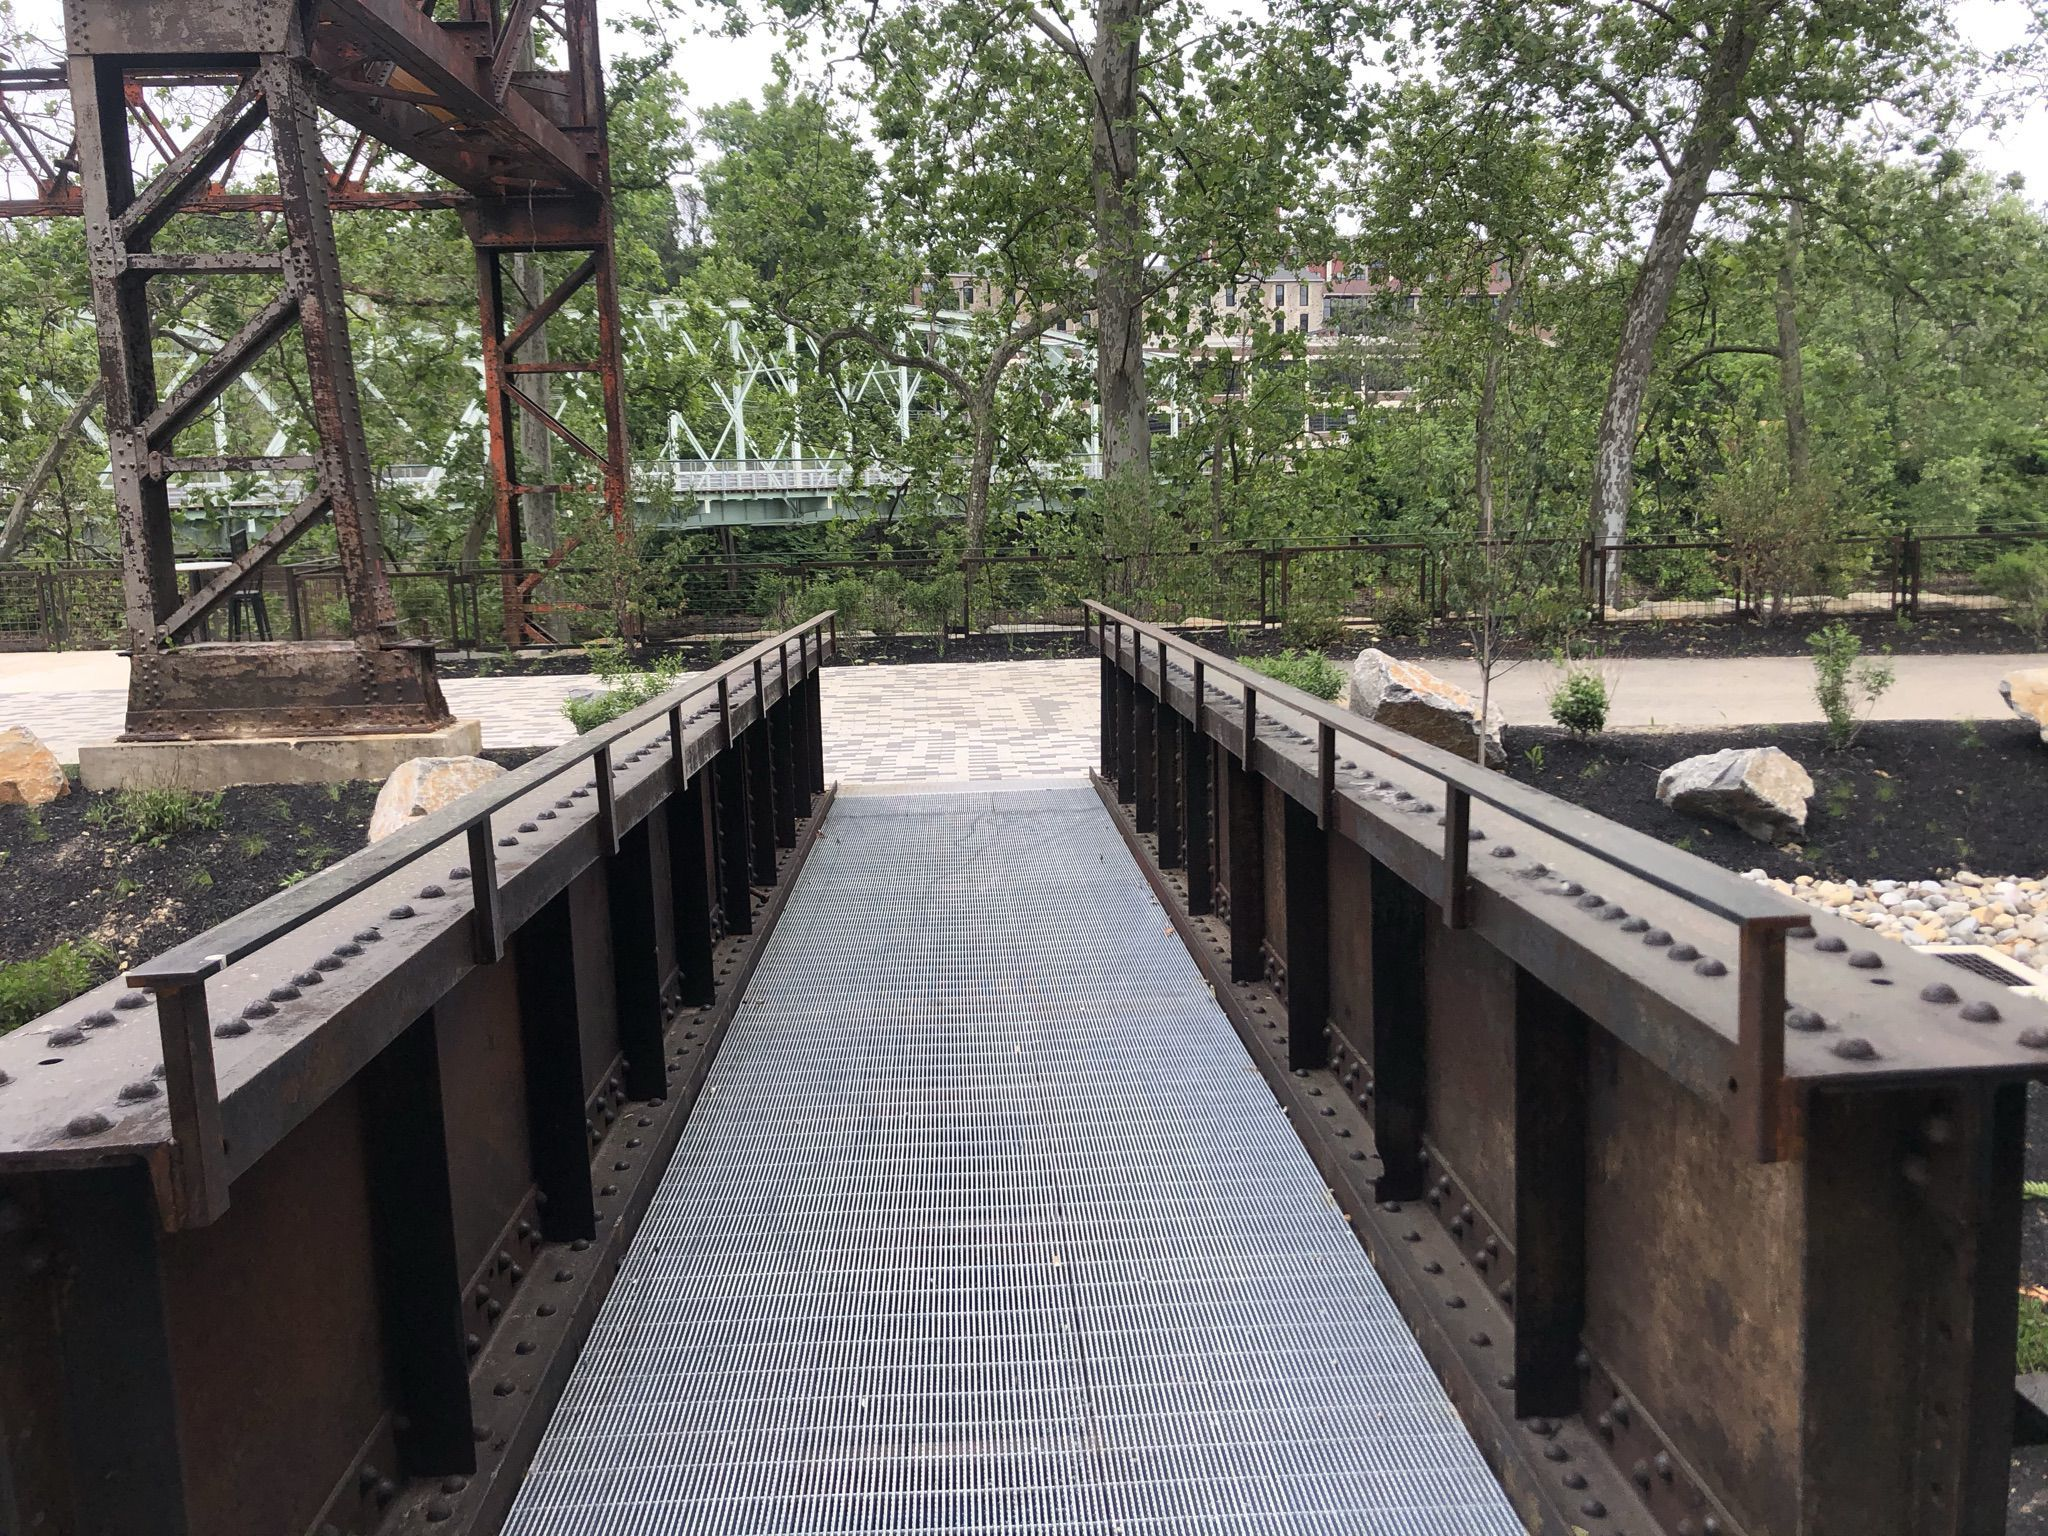 Landscape architect David Rubin repurposed steel girders from the Pencoyd Iron Works to create this ramp linking the new riverwalk to the Marriott Residence Inn.